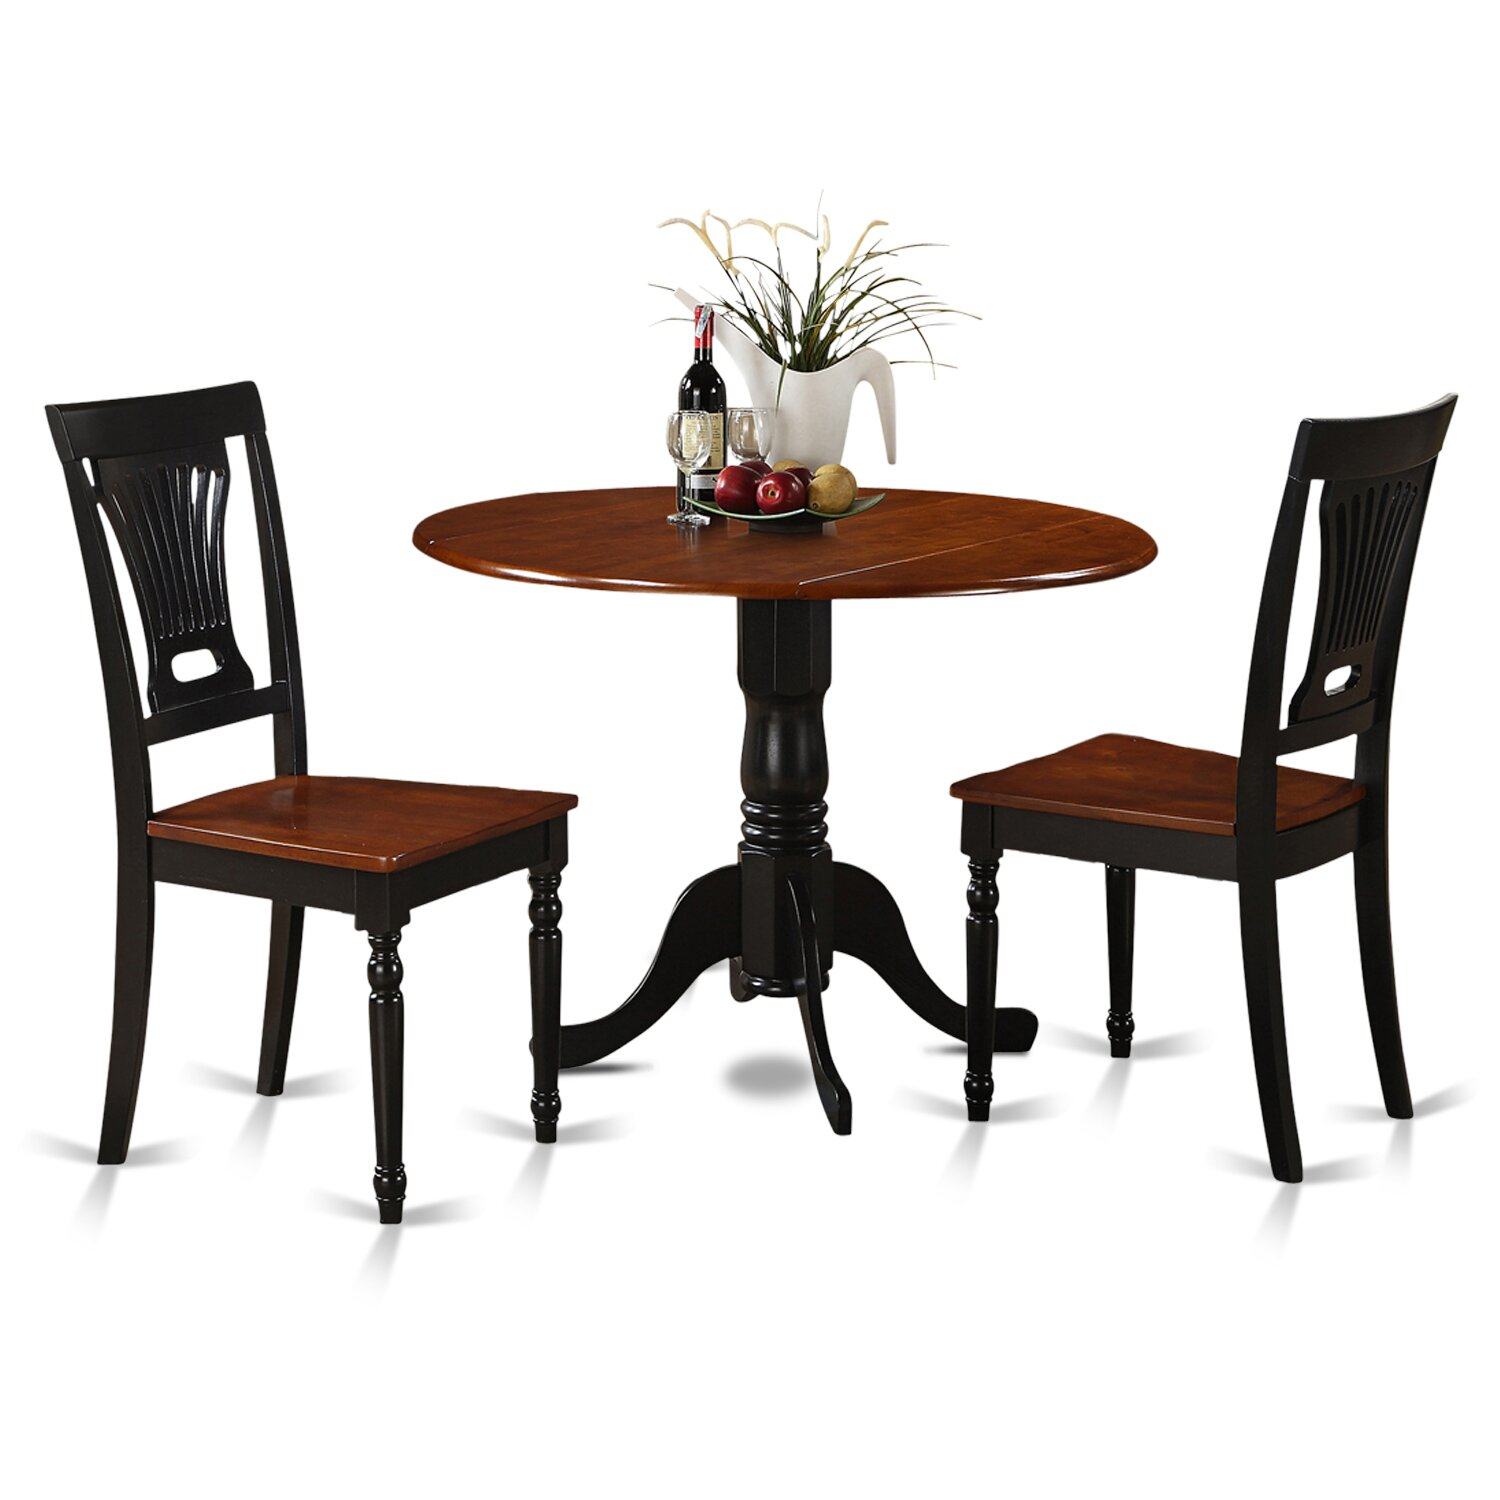 Wooden importers dublin 3 piece dining set reviews wayfair for Kitchen dinette sets